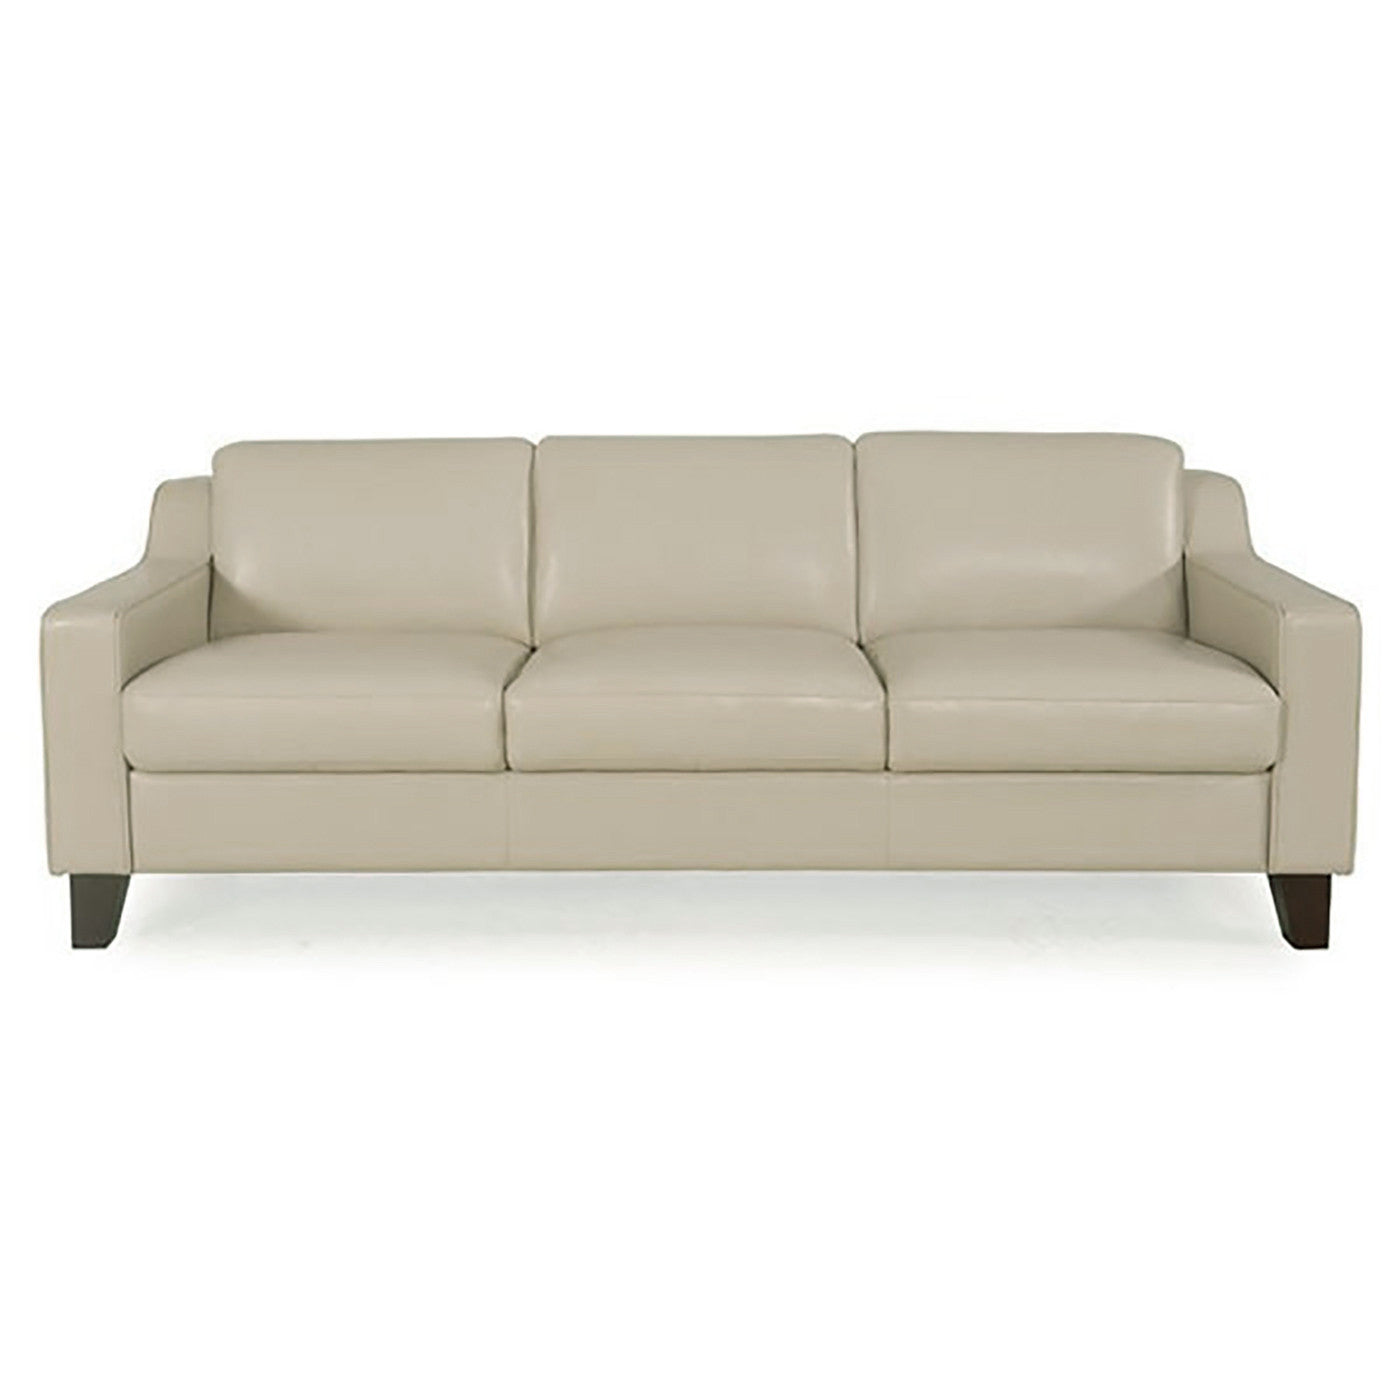 Barber Leather Sofa TAN   Apt2B   1